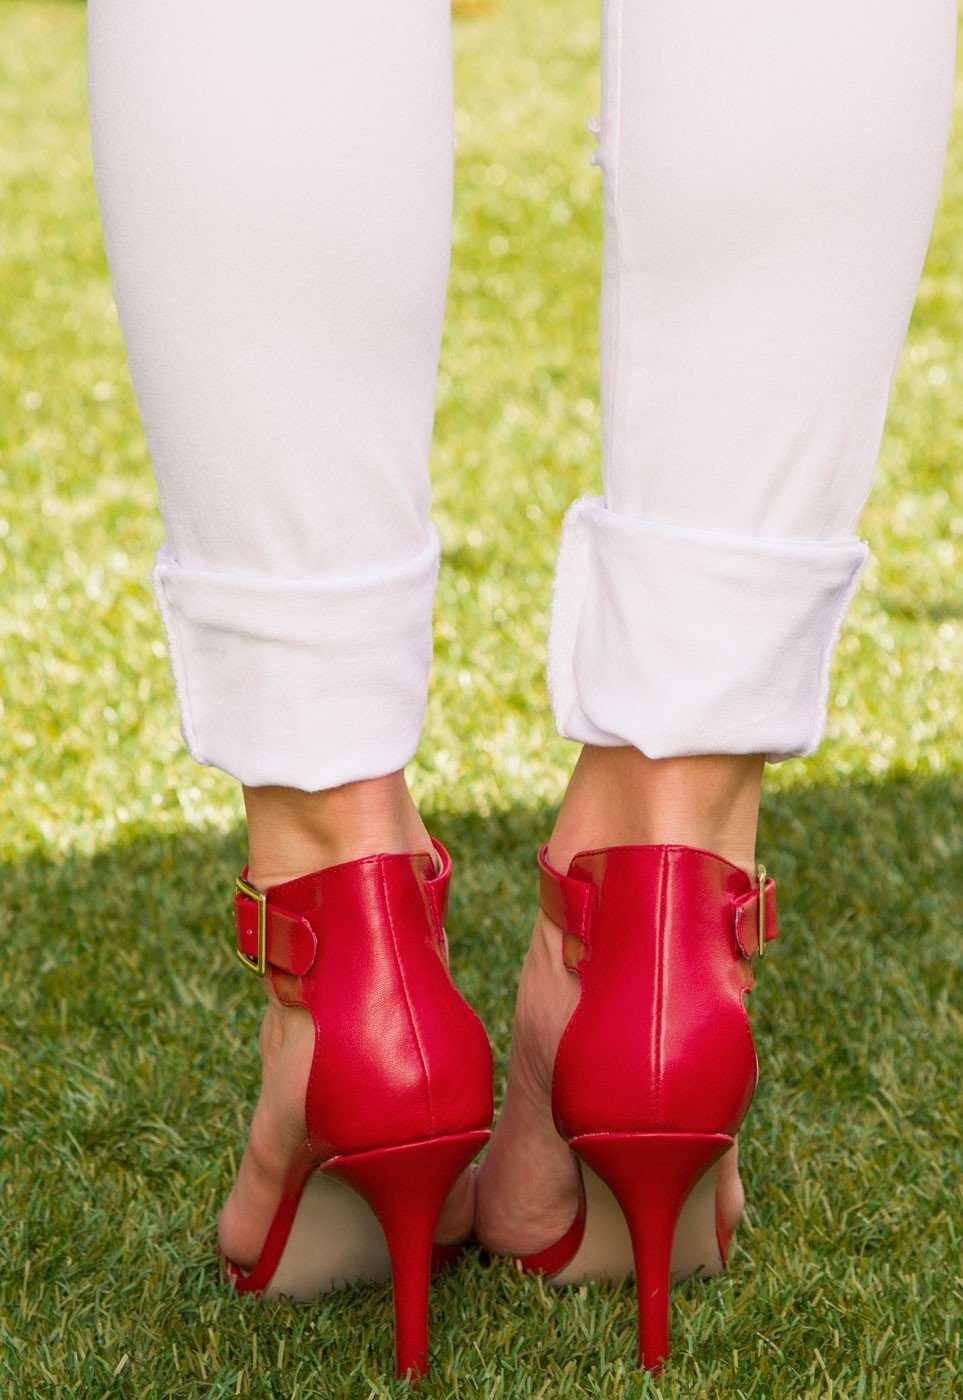 Shoes - Giovanna Heels - Red